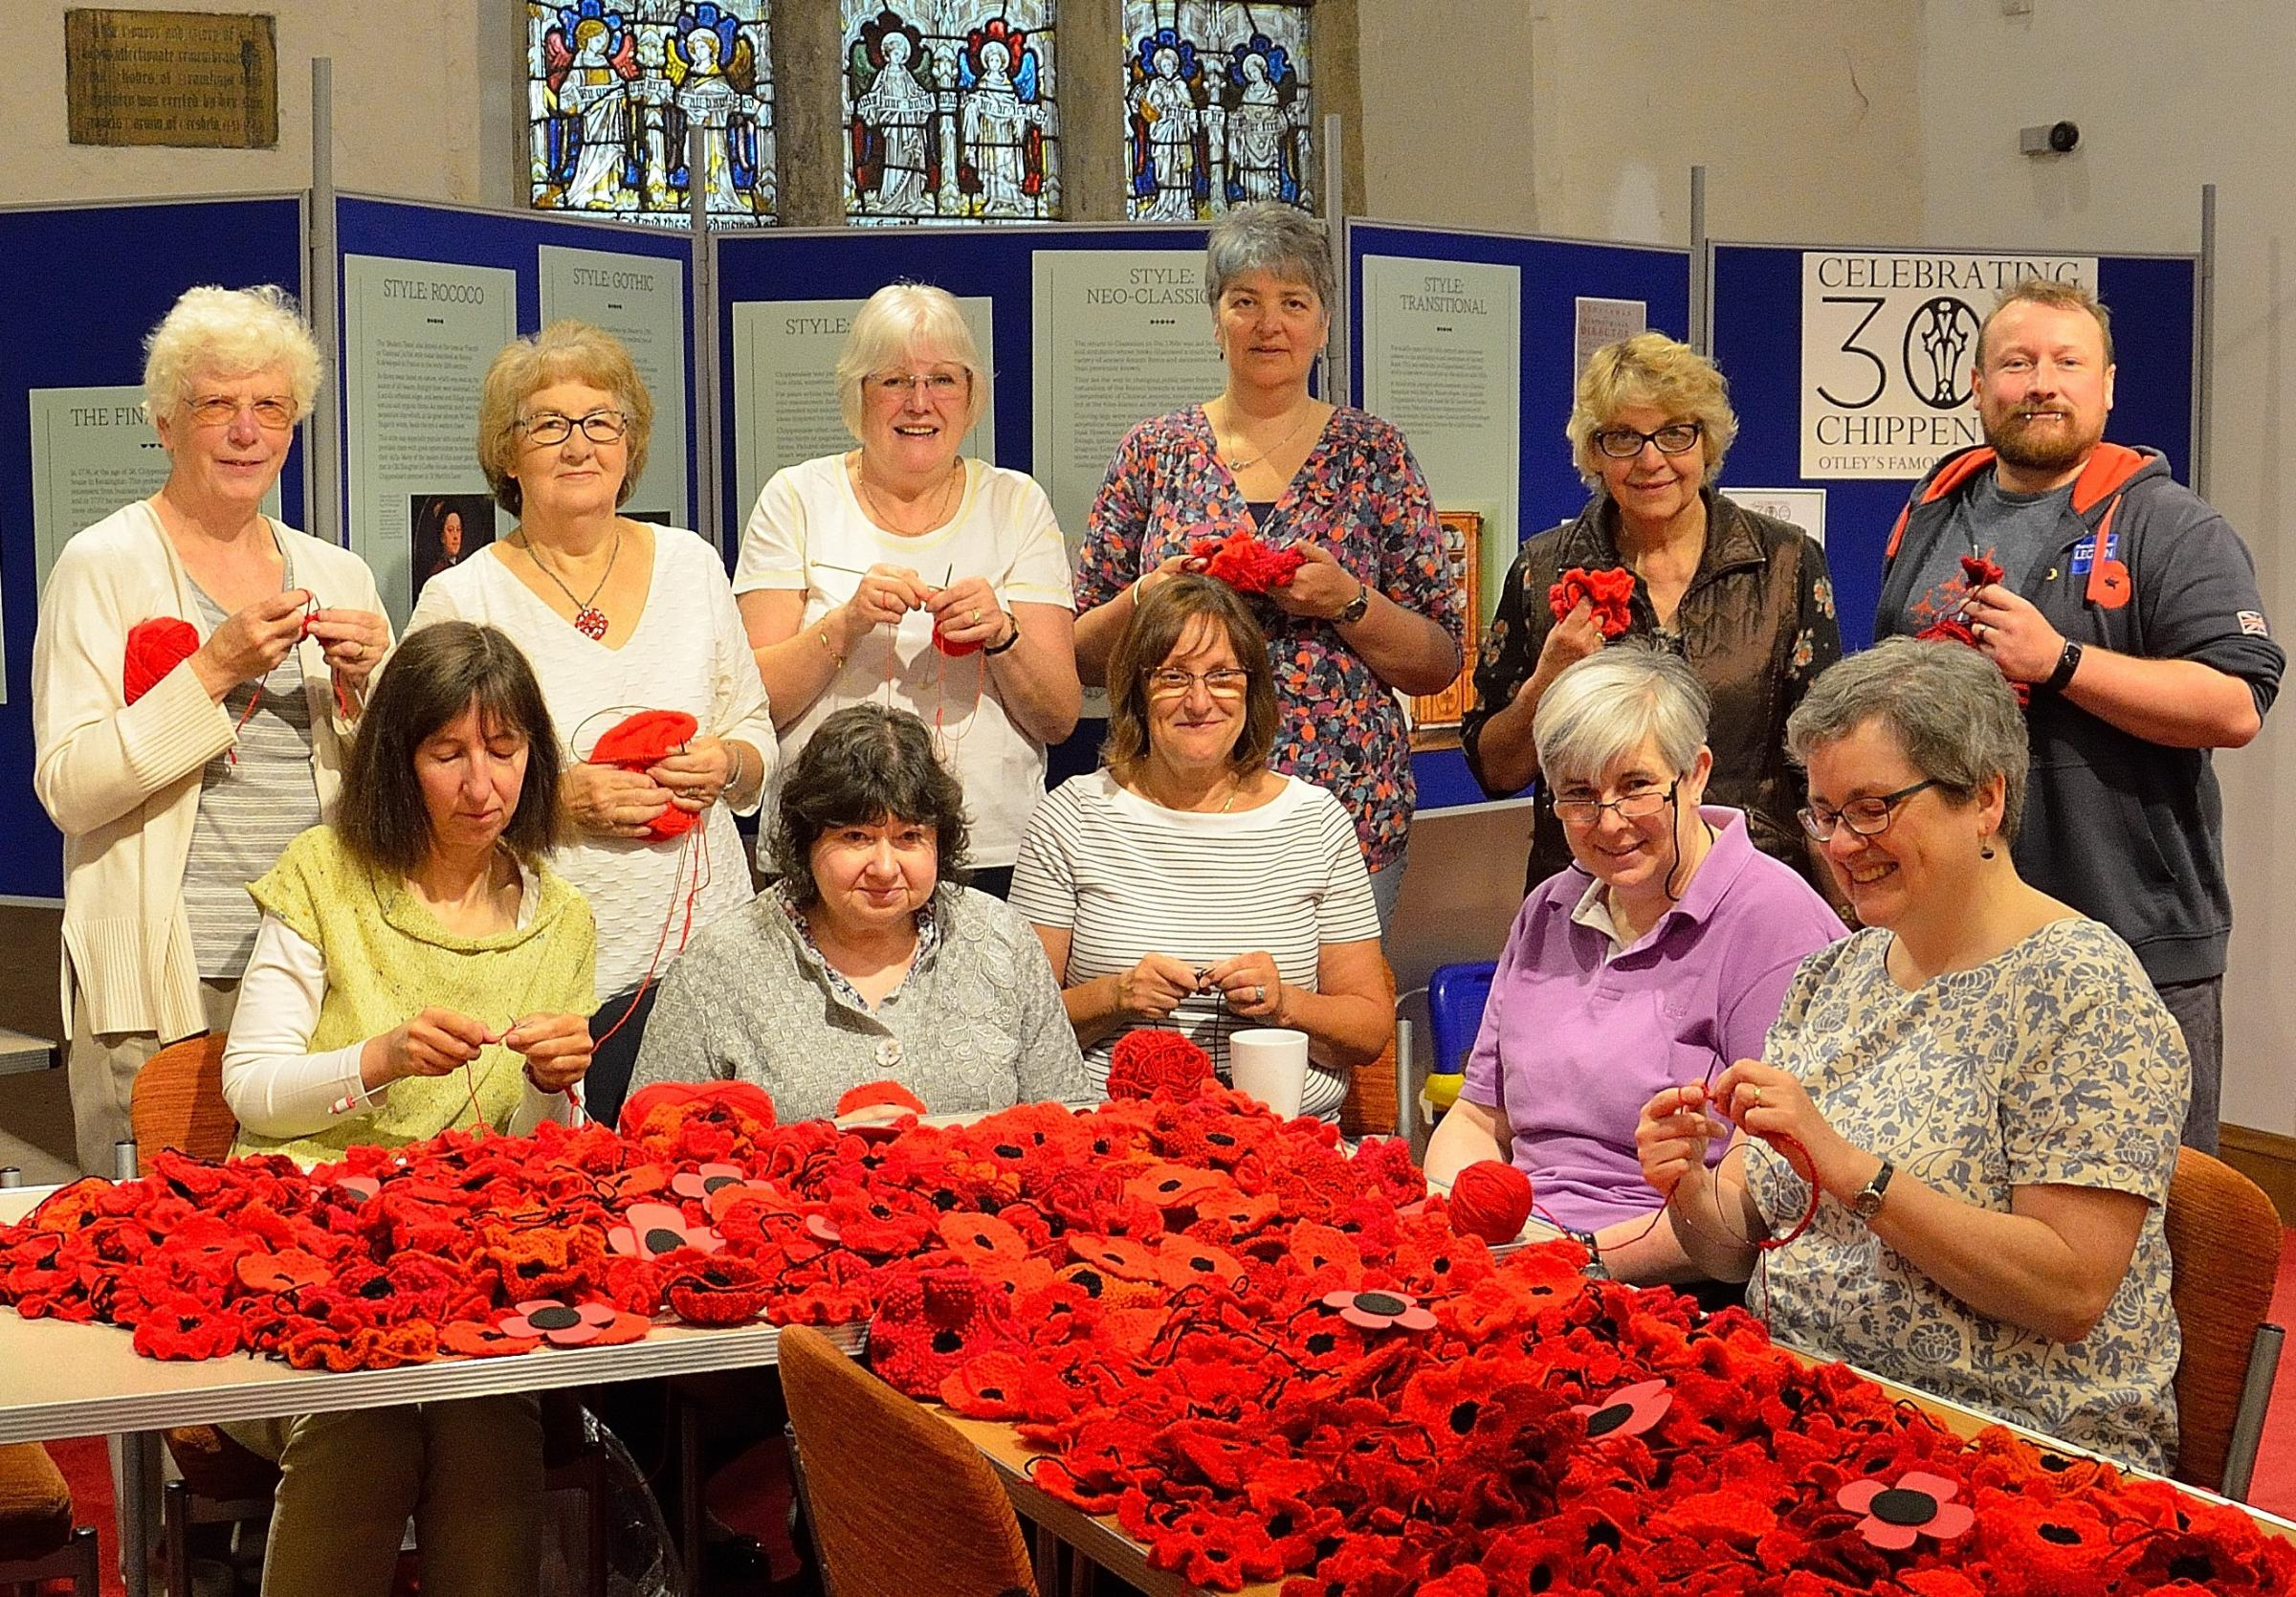 Aiming to create 14,000 poppies for an exhibit at Otley Parish Church - members of the Knit and Natter group